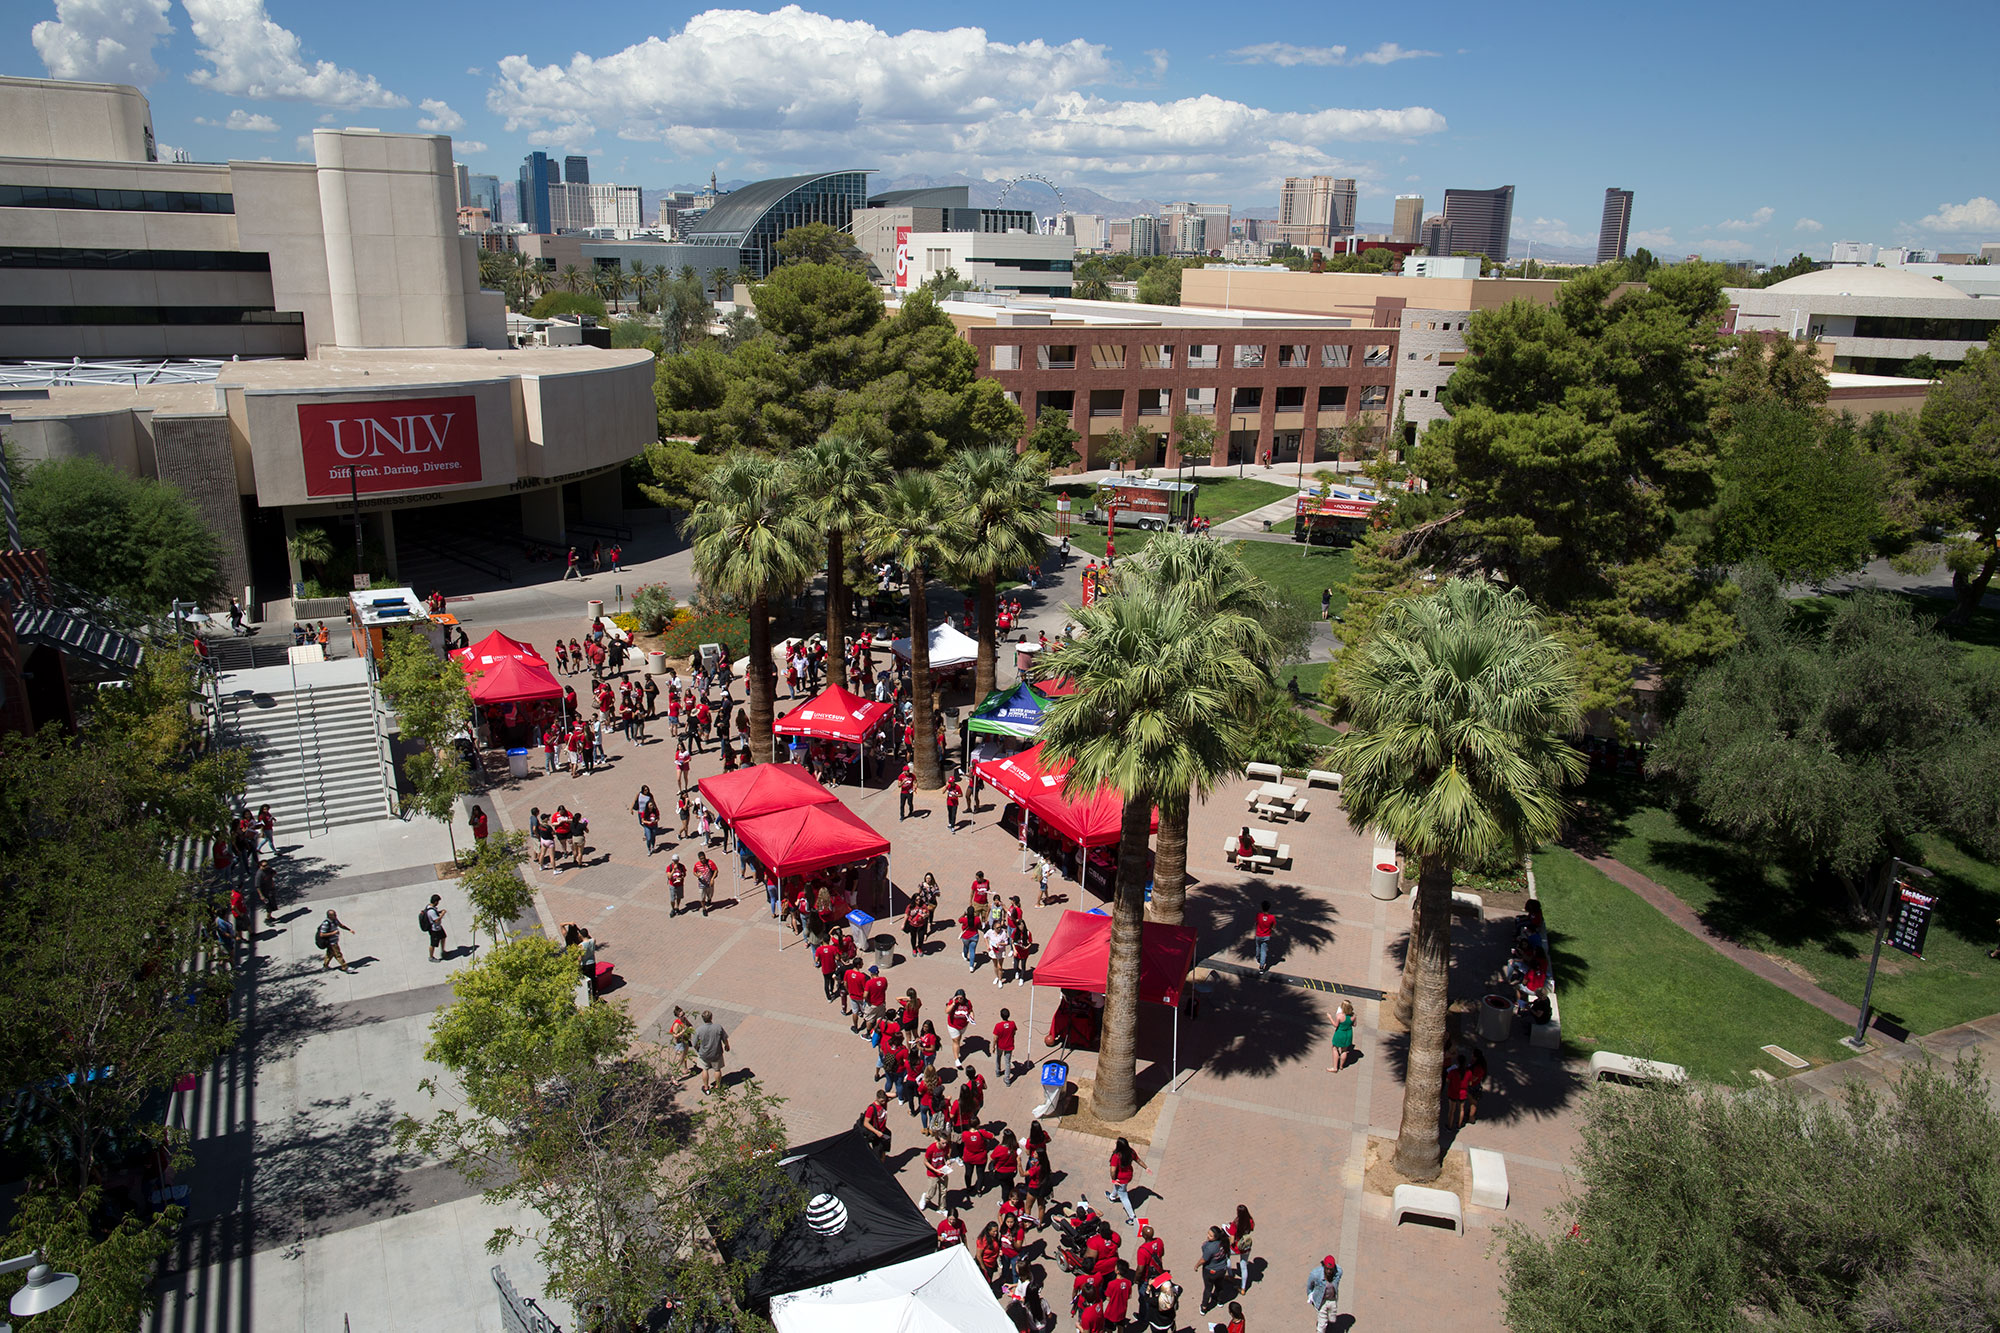 Aerial shot of academic mall with booths set up for an event